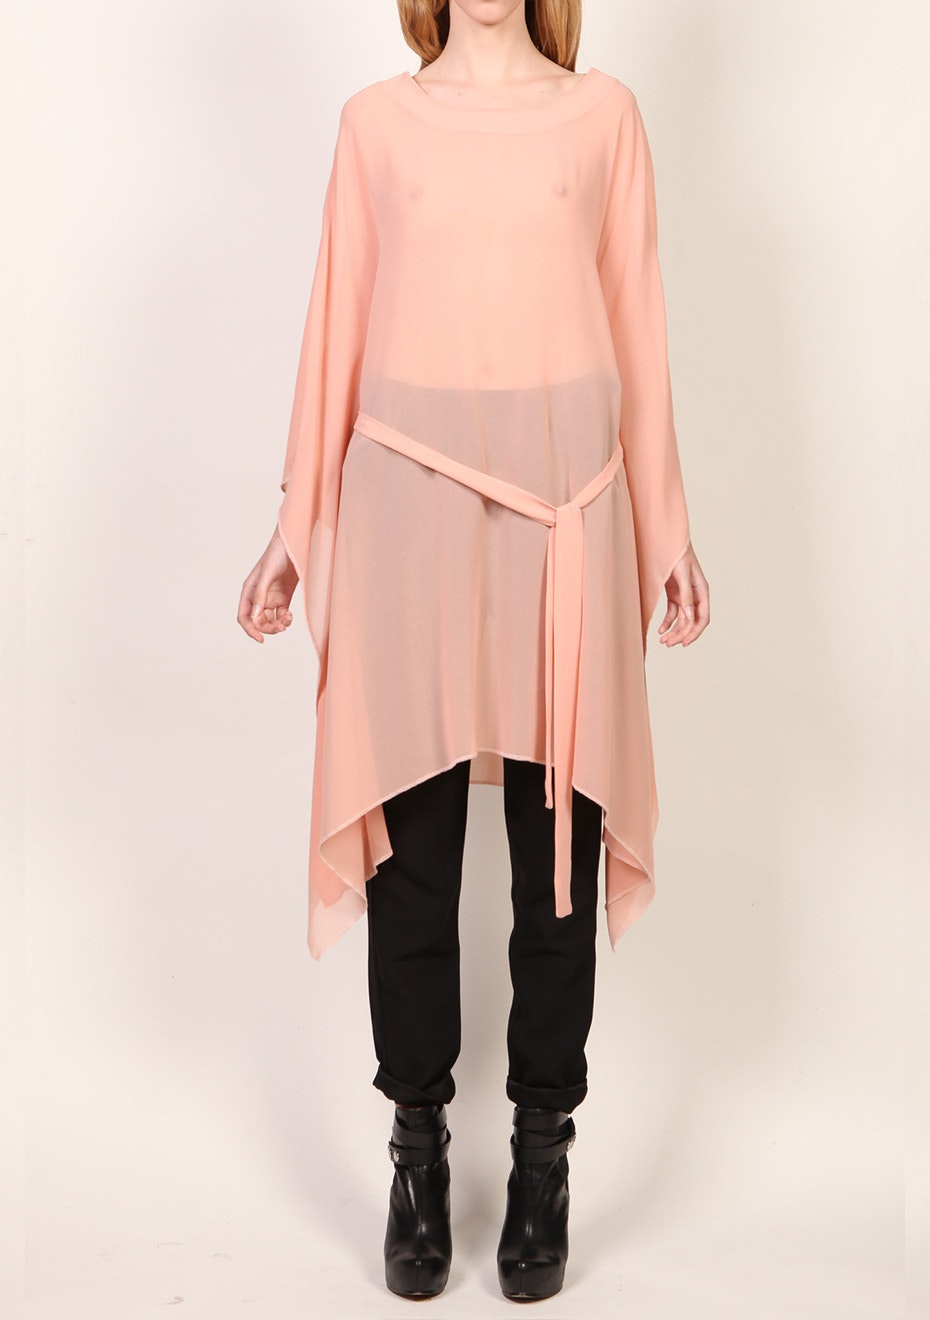 X-Plain - Hush Dress - Salmon